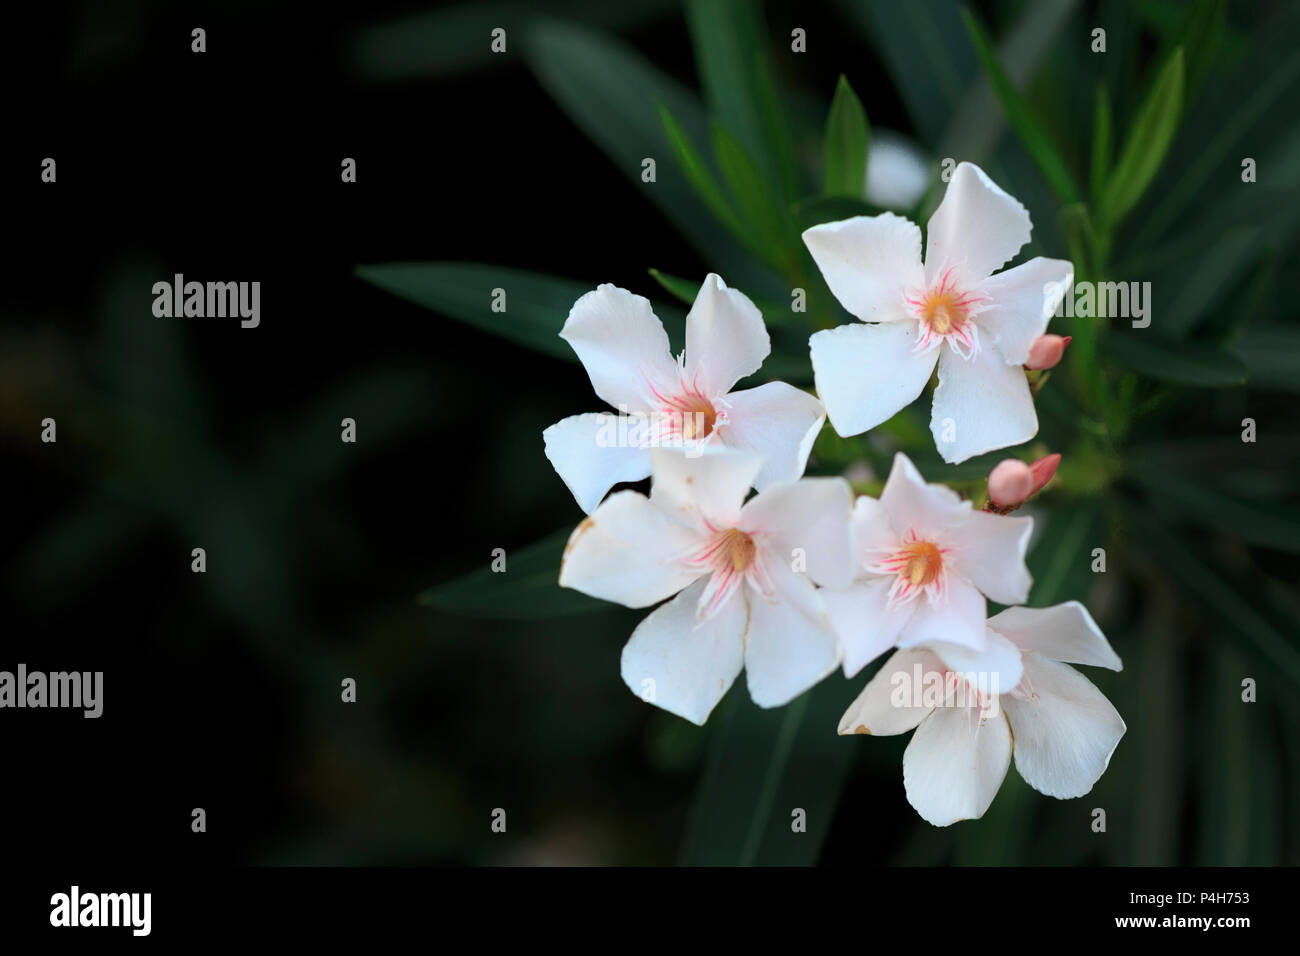 Oleander Blossom Stock Photos Oleander Blossom Stock Images Alamy